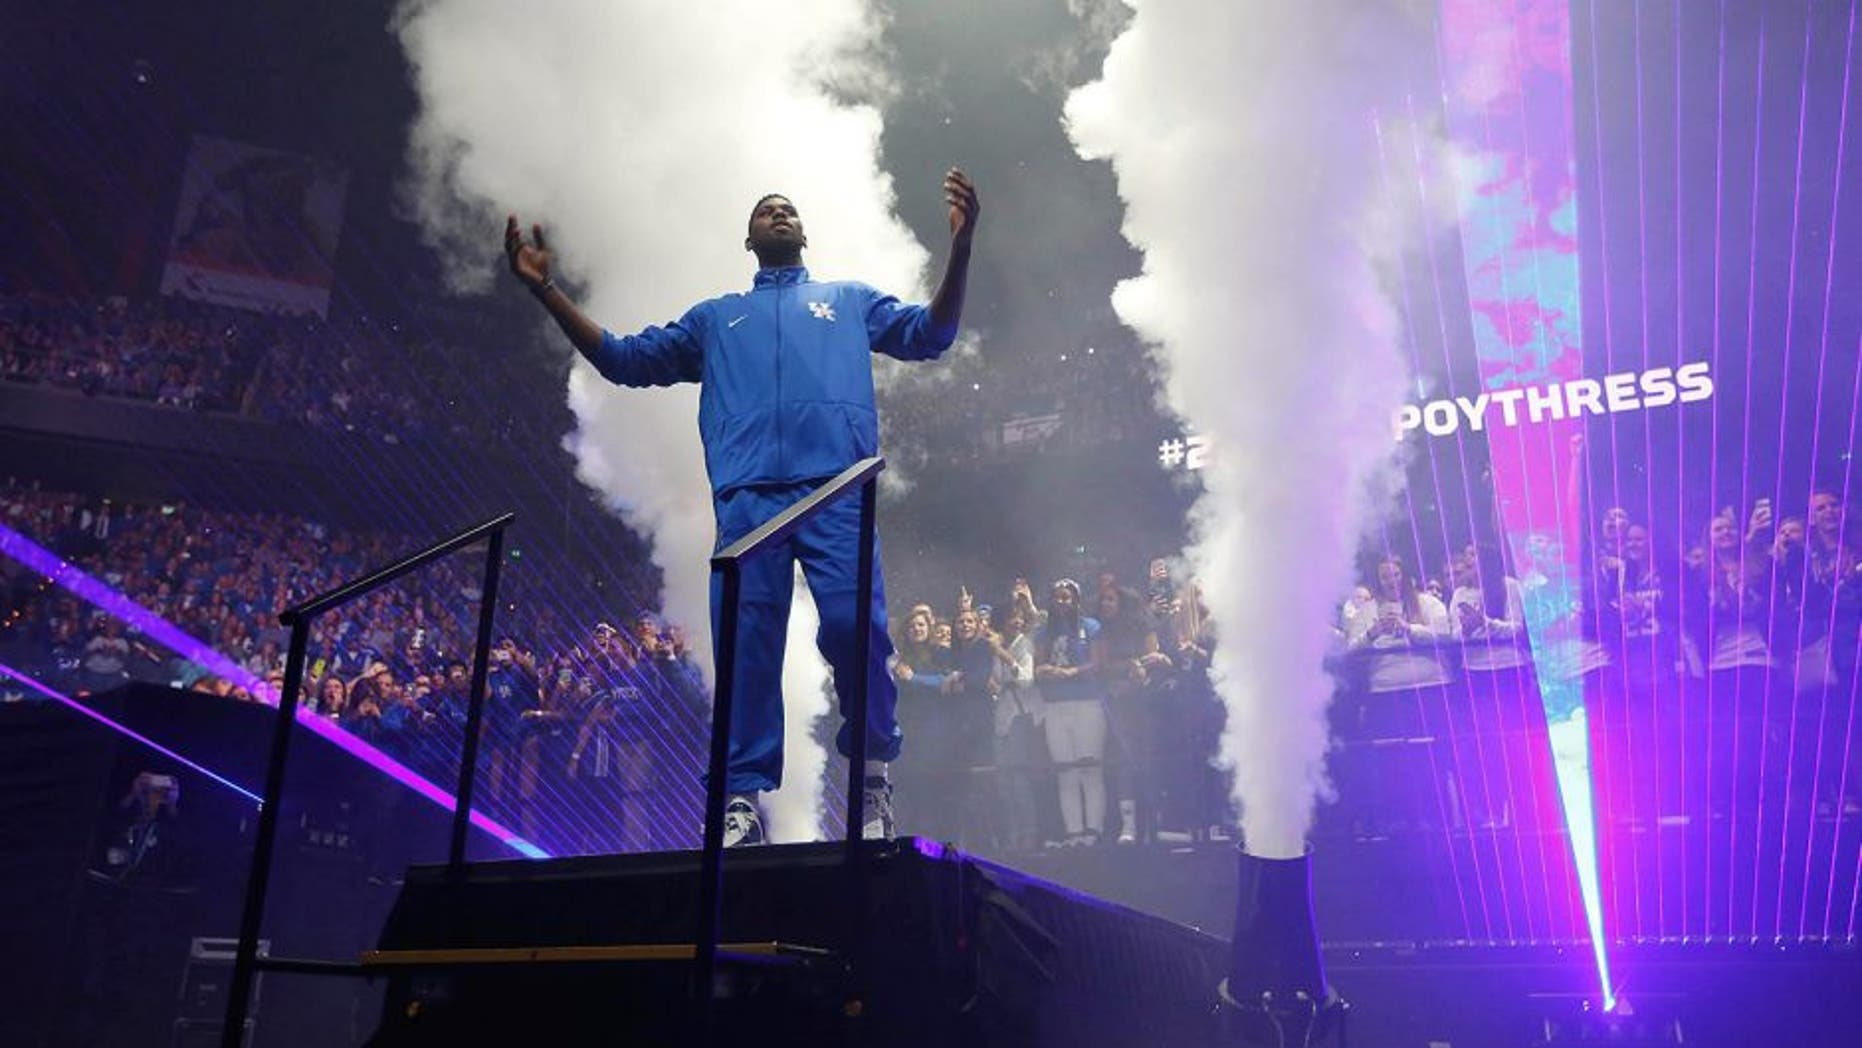 Oct 16, 2015; Lexington, KY, USA; Kentucky Wildcats forward Alex Poythress (22) waves to the crowd during player introduced prior to the Kentucky Blue Madness at Rupp Arena. Mandatory Credit: Mark Zerof-USA TODAY Sports